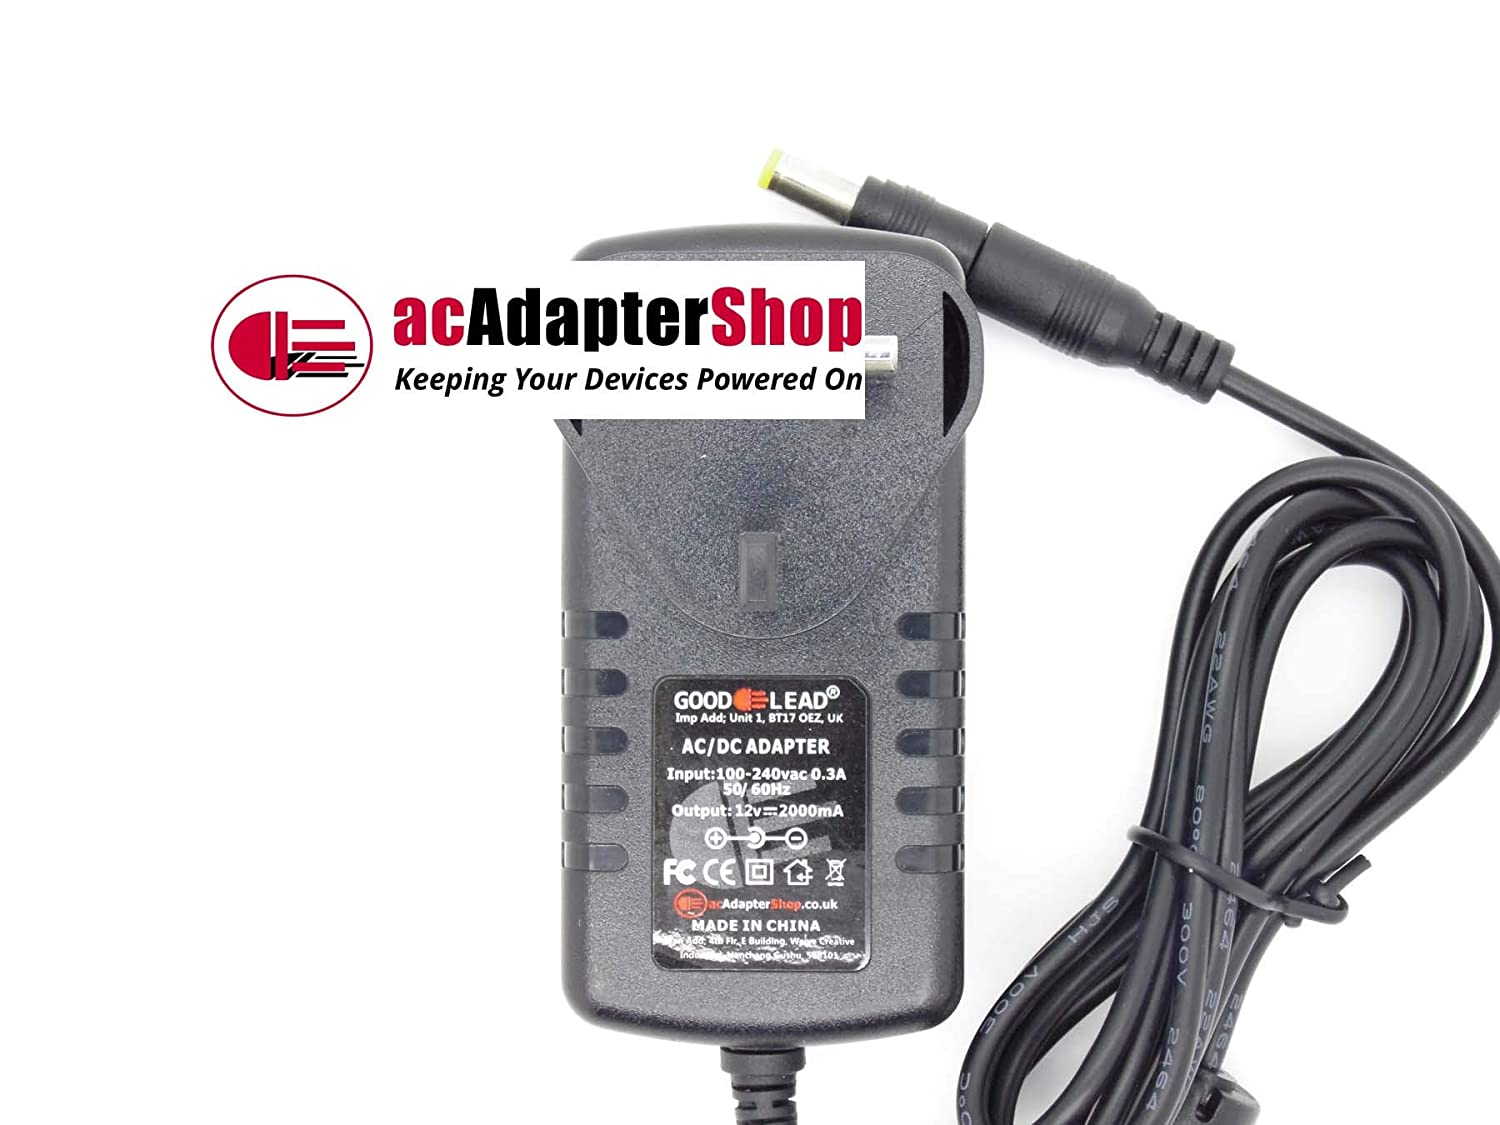 GOOD LEAD 12V YAMAHA PSR240 PSR73 PSS380 KEYBOARD ACDC Switching Adapter CHARGER PLUG